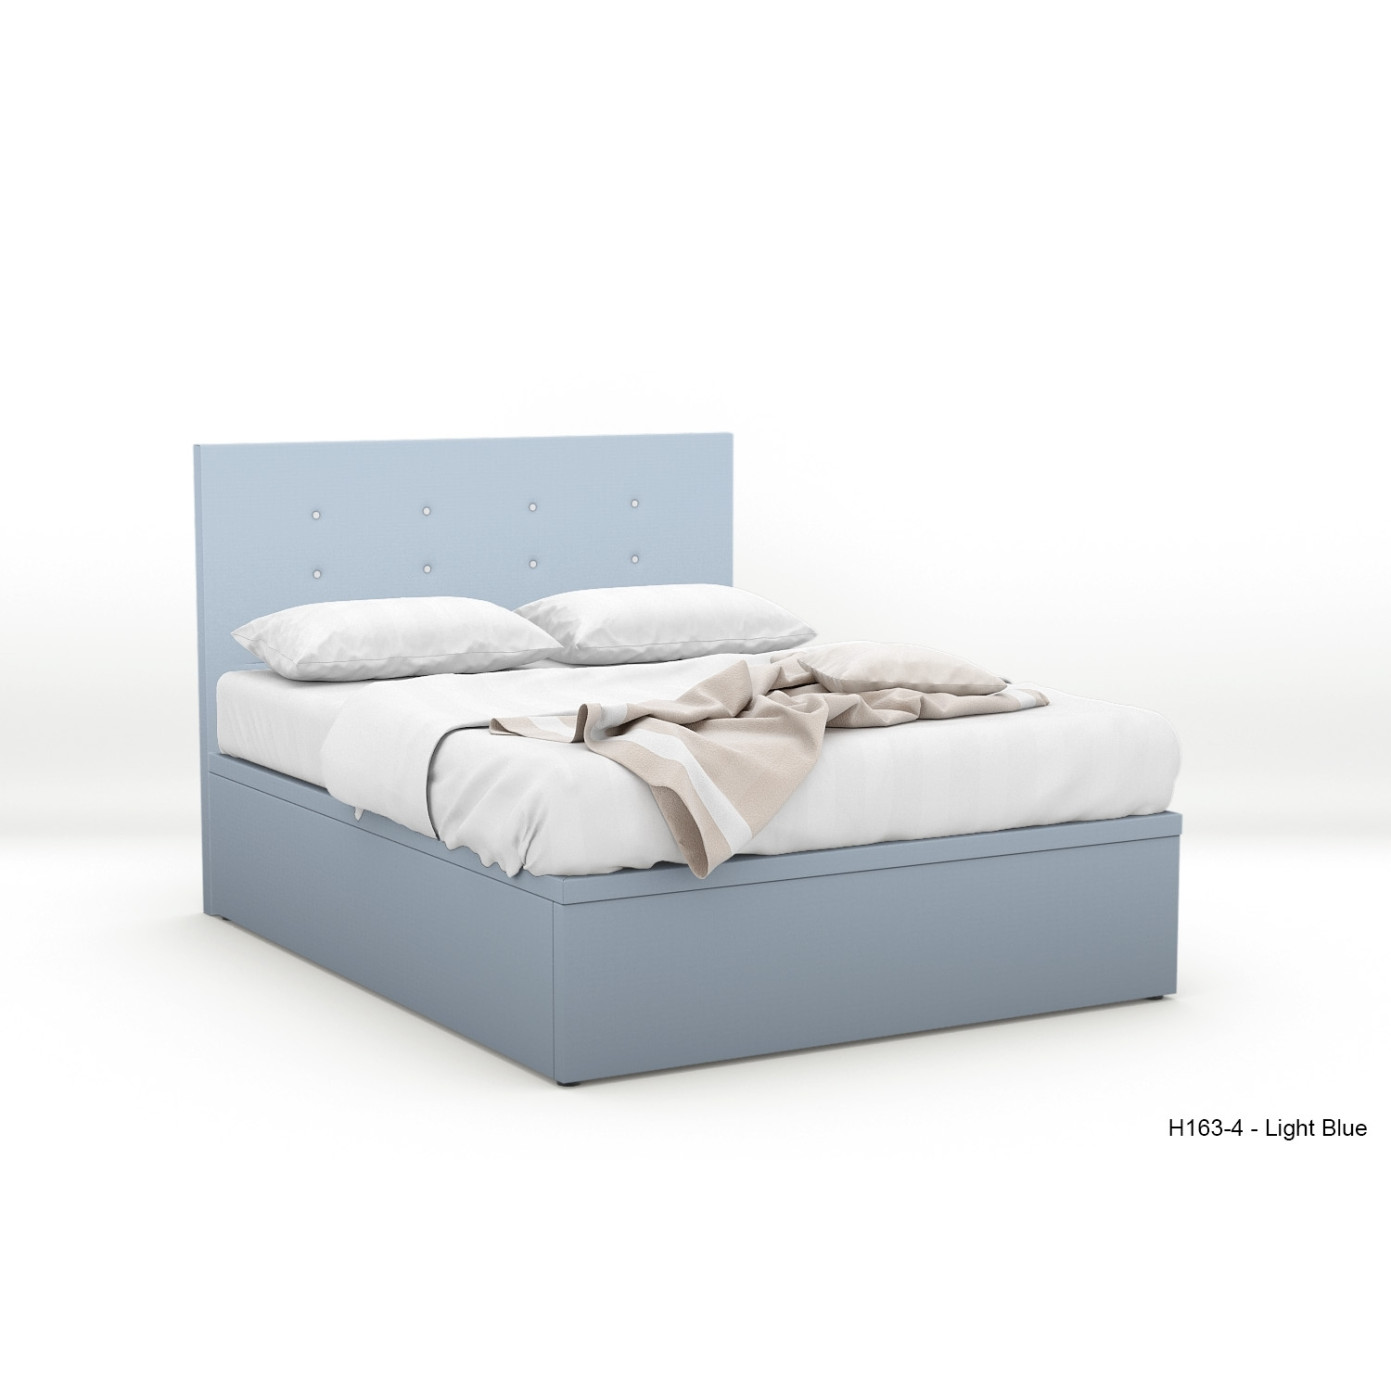 Raylight Bedset Package Queen Furniture Home D Cor Fortytwo